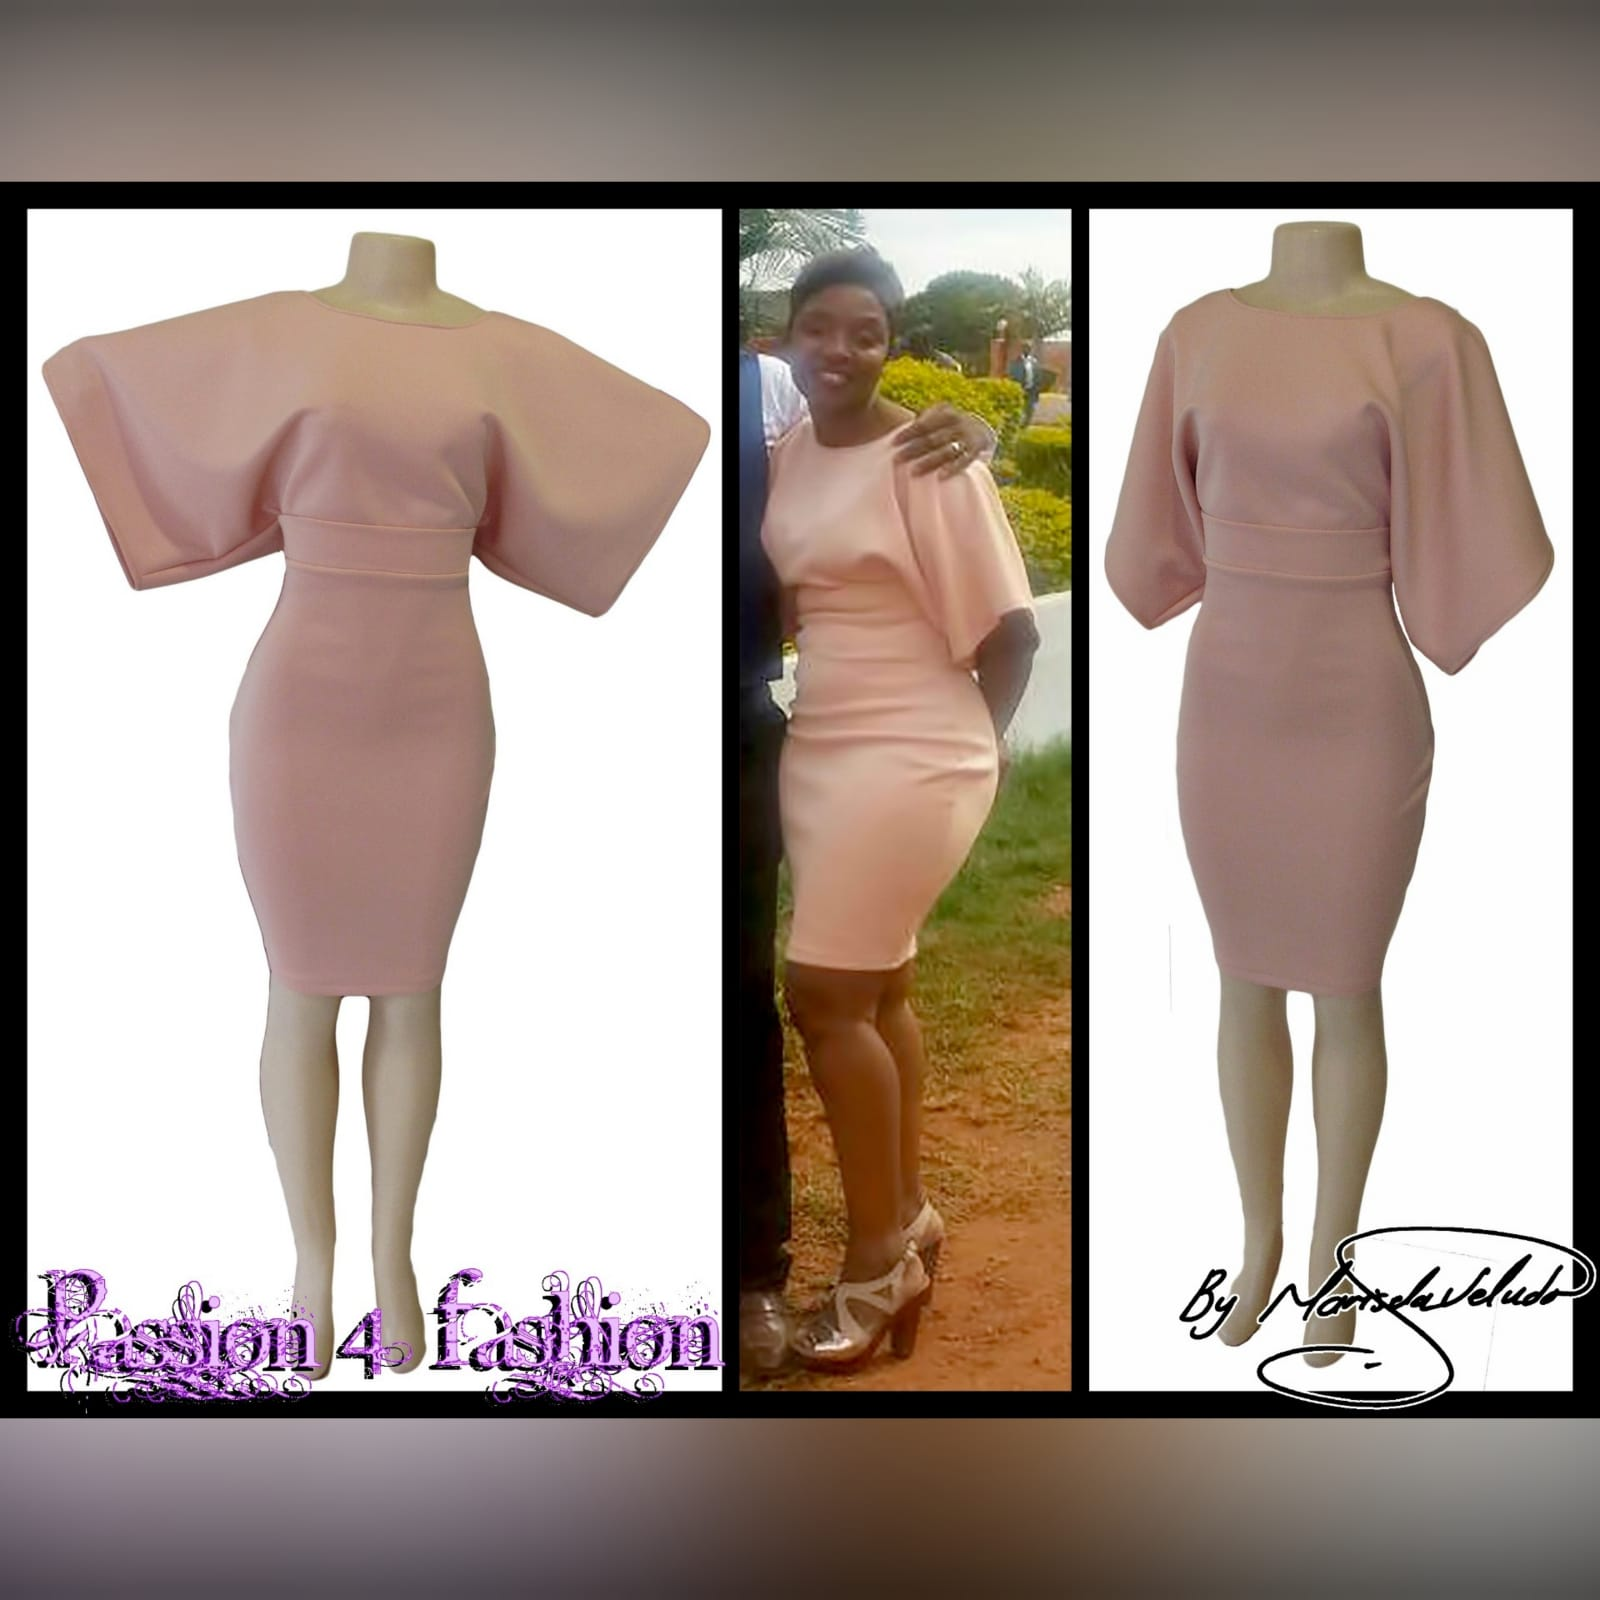 Dusty pink smart casual knee length dress 4 dusty pink smart casual knee length dress with wide short sleeves and fitted hip area creating a mini skirt look. With a belt